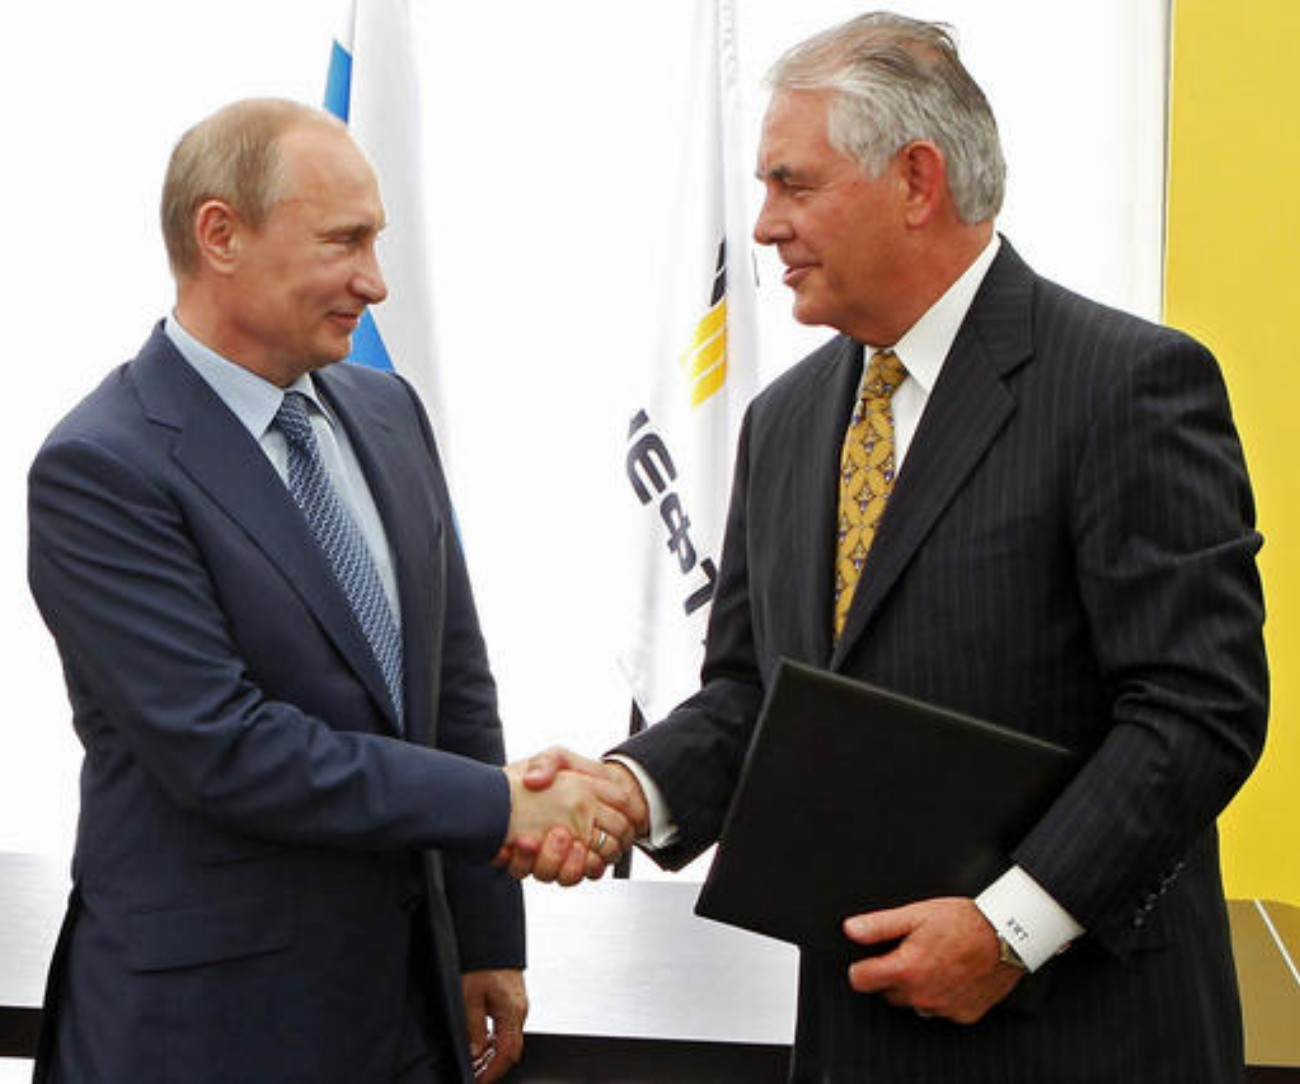 File photo from 2012: Russian President Vladimir Putin, left, and ExxonMobil CEO Rex Tillerson shake hands at a signing ceremony of an agreement between state-controlled Russian oil company Rosneft and ExxonMobil at the Black Sea port of Tuapse, southern Russia. President-elect Donald Trump selected Tillerson to lead the State Department on Monday, Dec. 12, 2016. Photo originally taken in Moscow, Russia, June 12, 2012 | Photo by Mikhail Klimentyev/RIA-Novosti, Presidential Press Service via AP, Pool